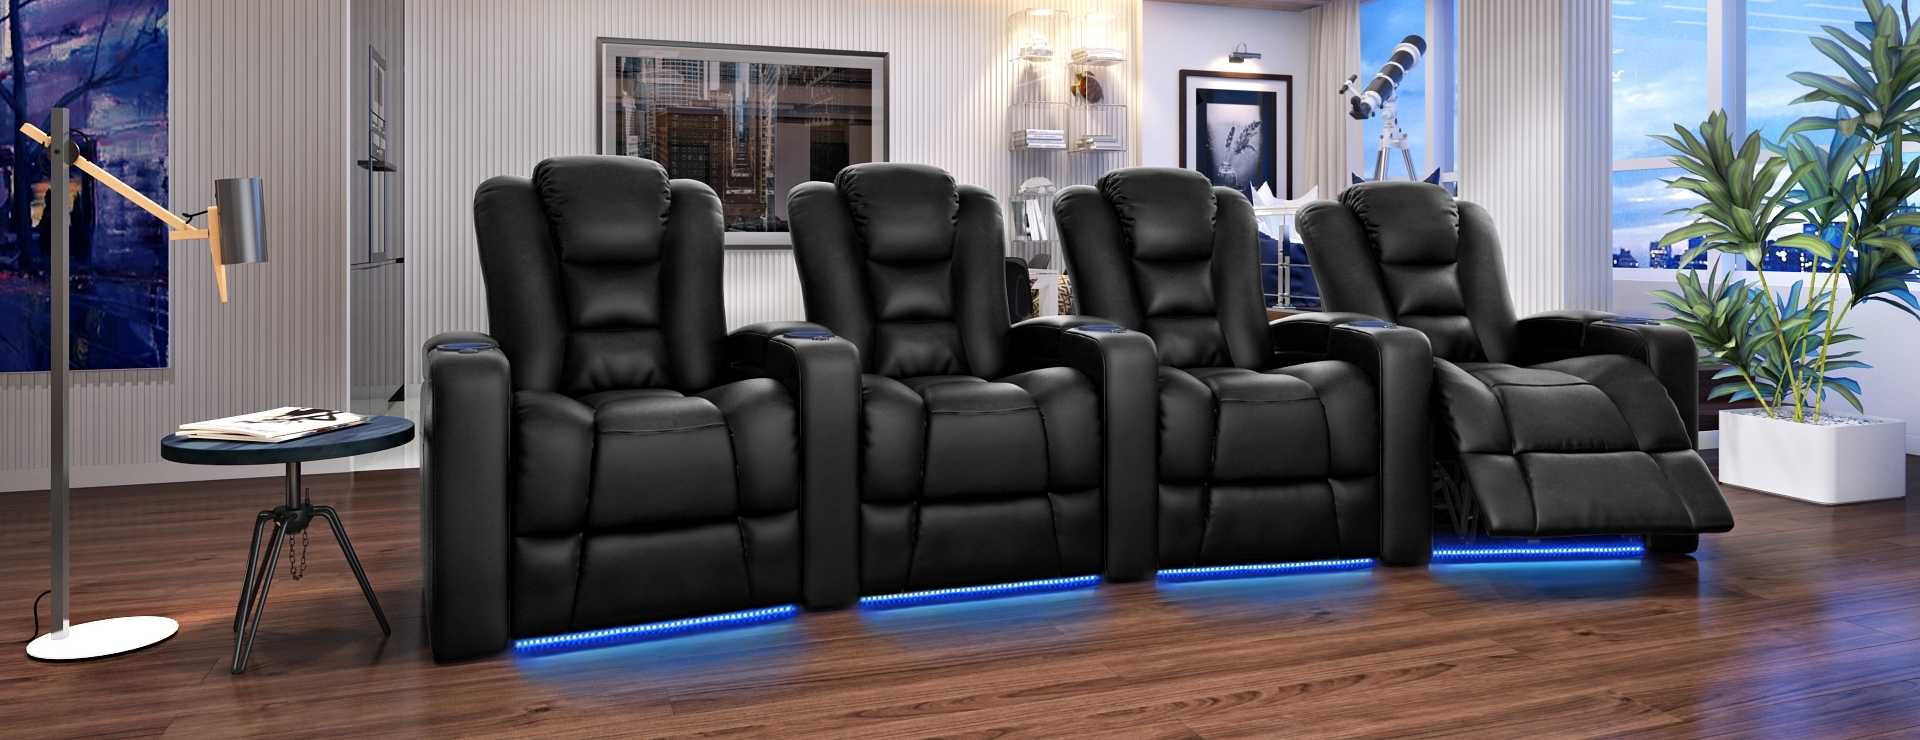 Theater recliner chairs